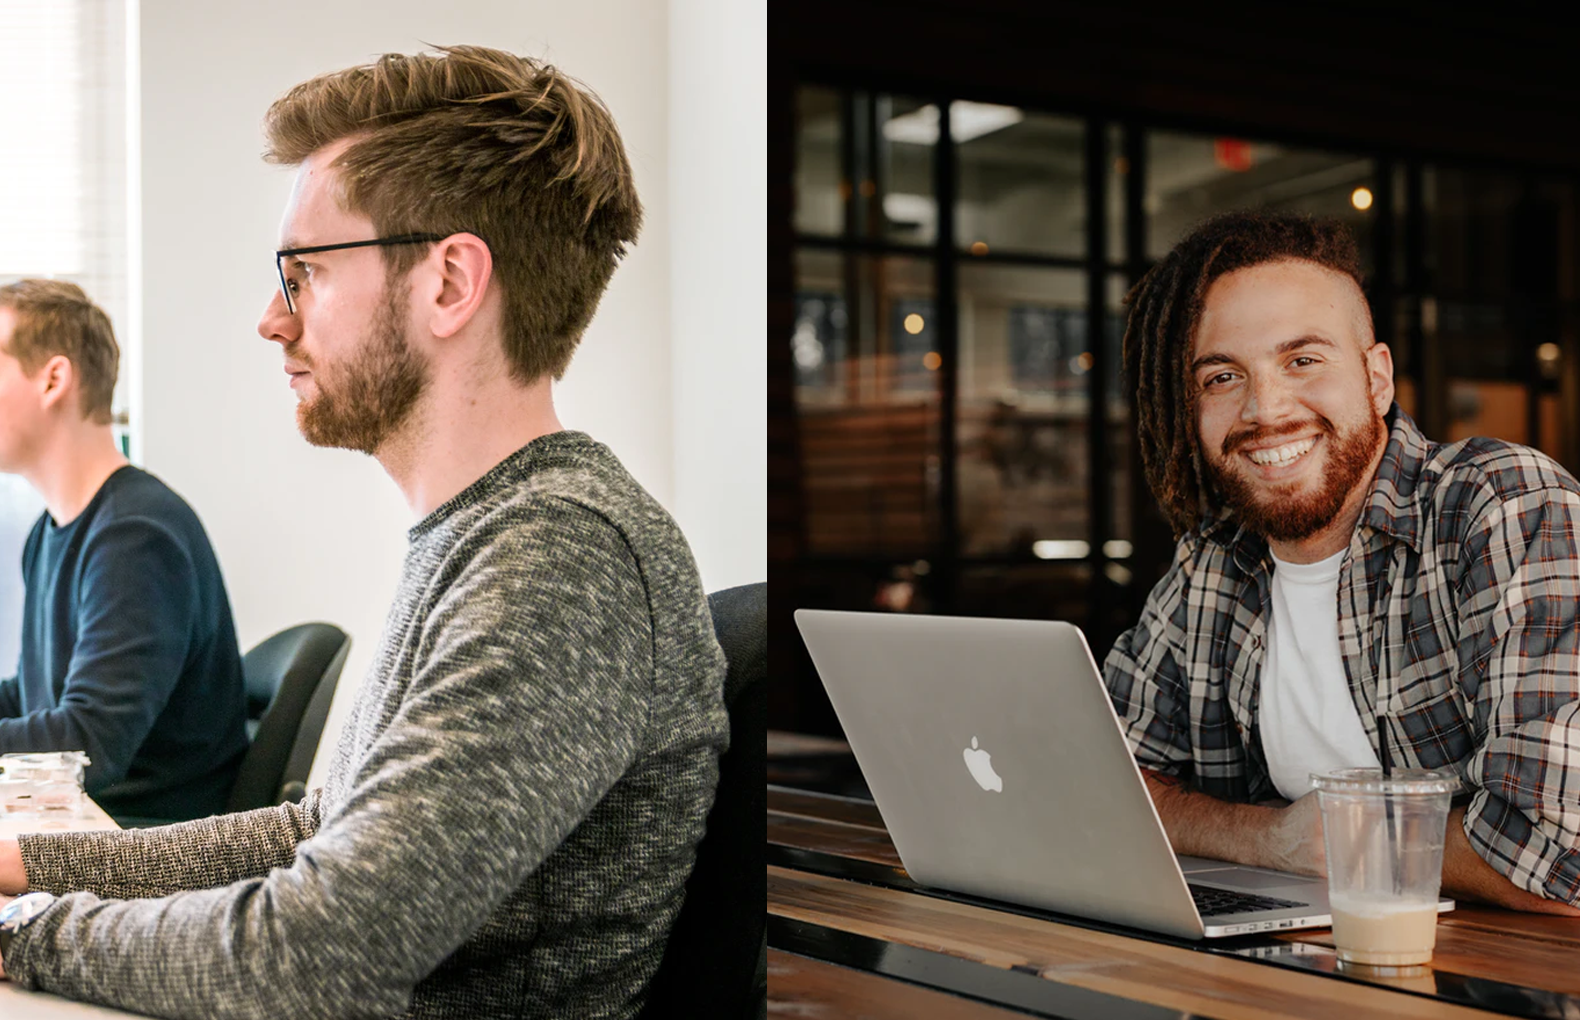 Employee and Freelancer Differences